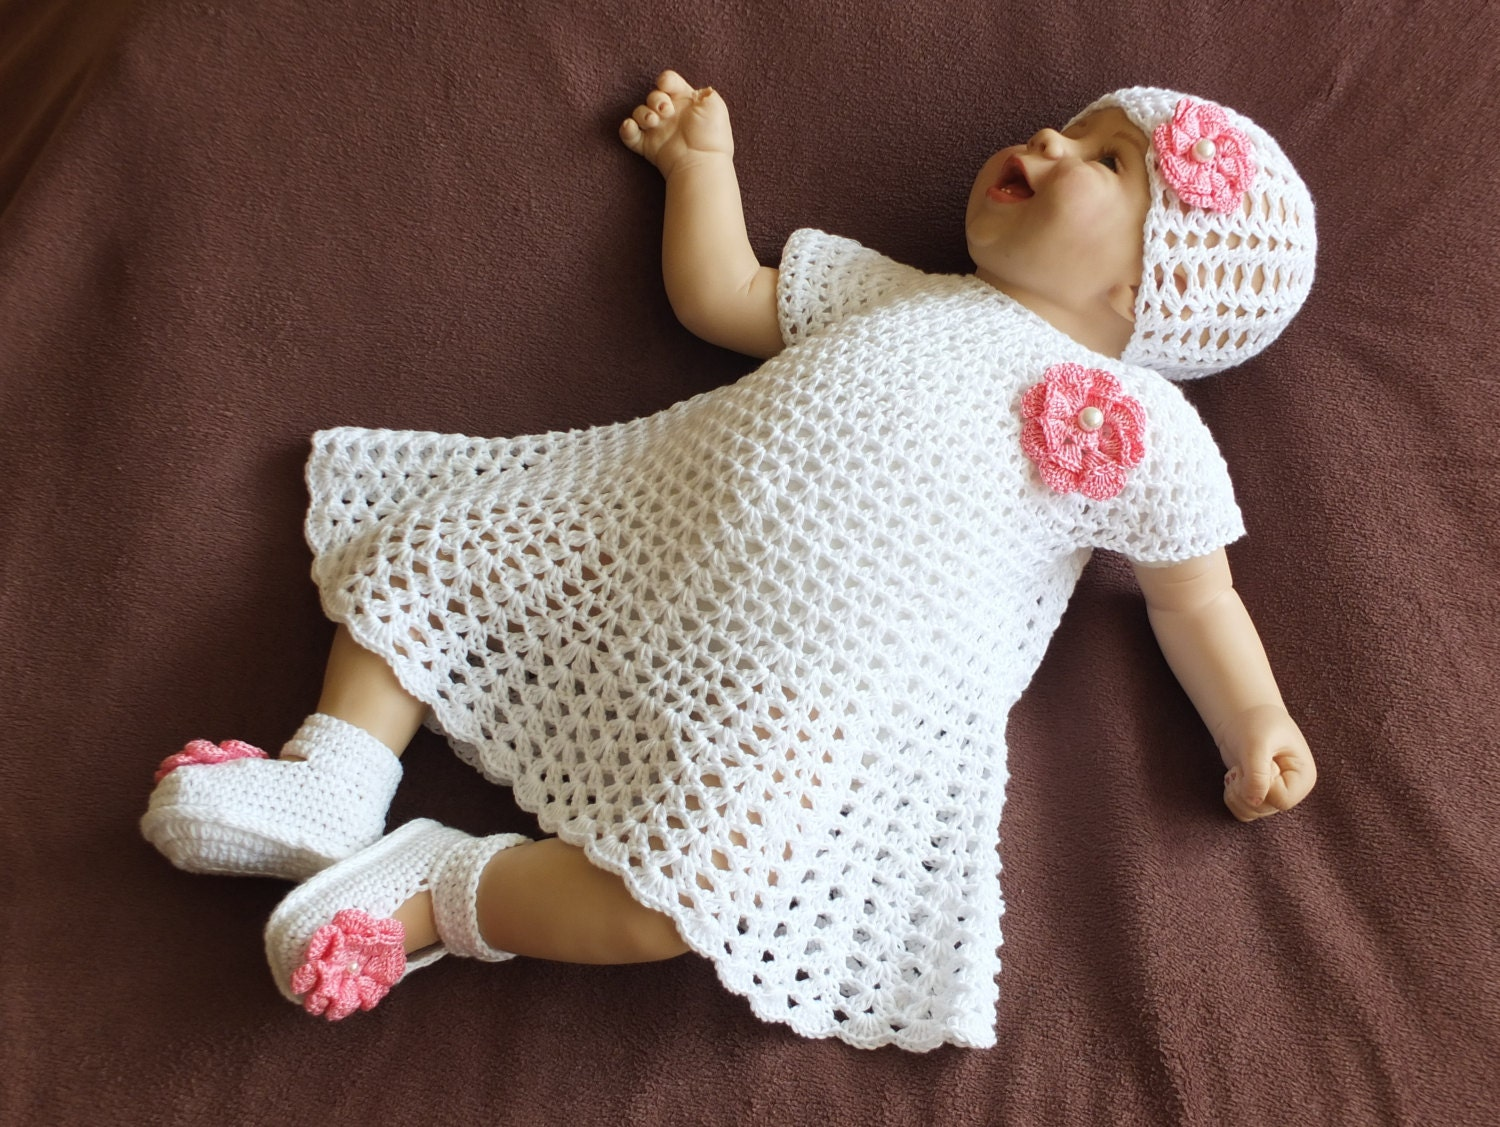 baby dresses and shoes - 28 images - baby clothing and ...